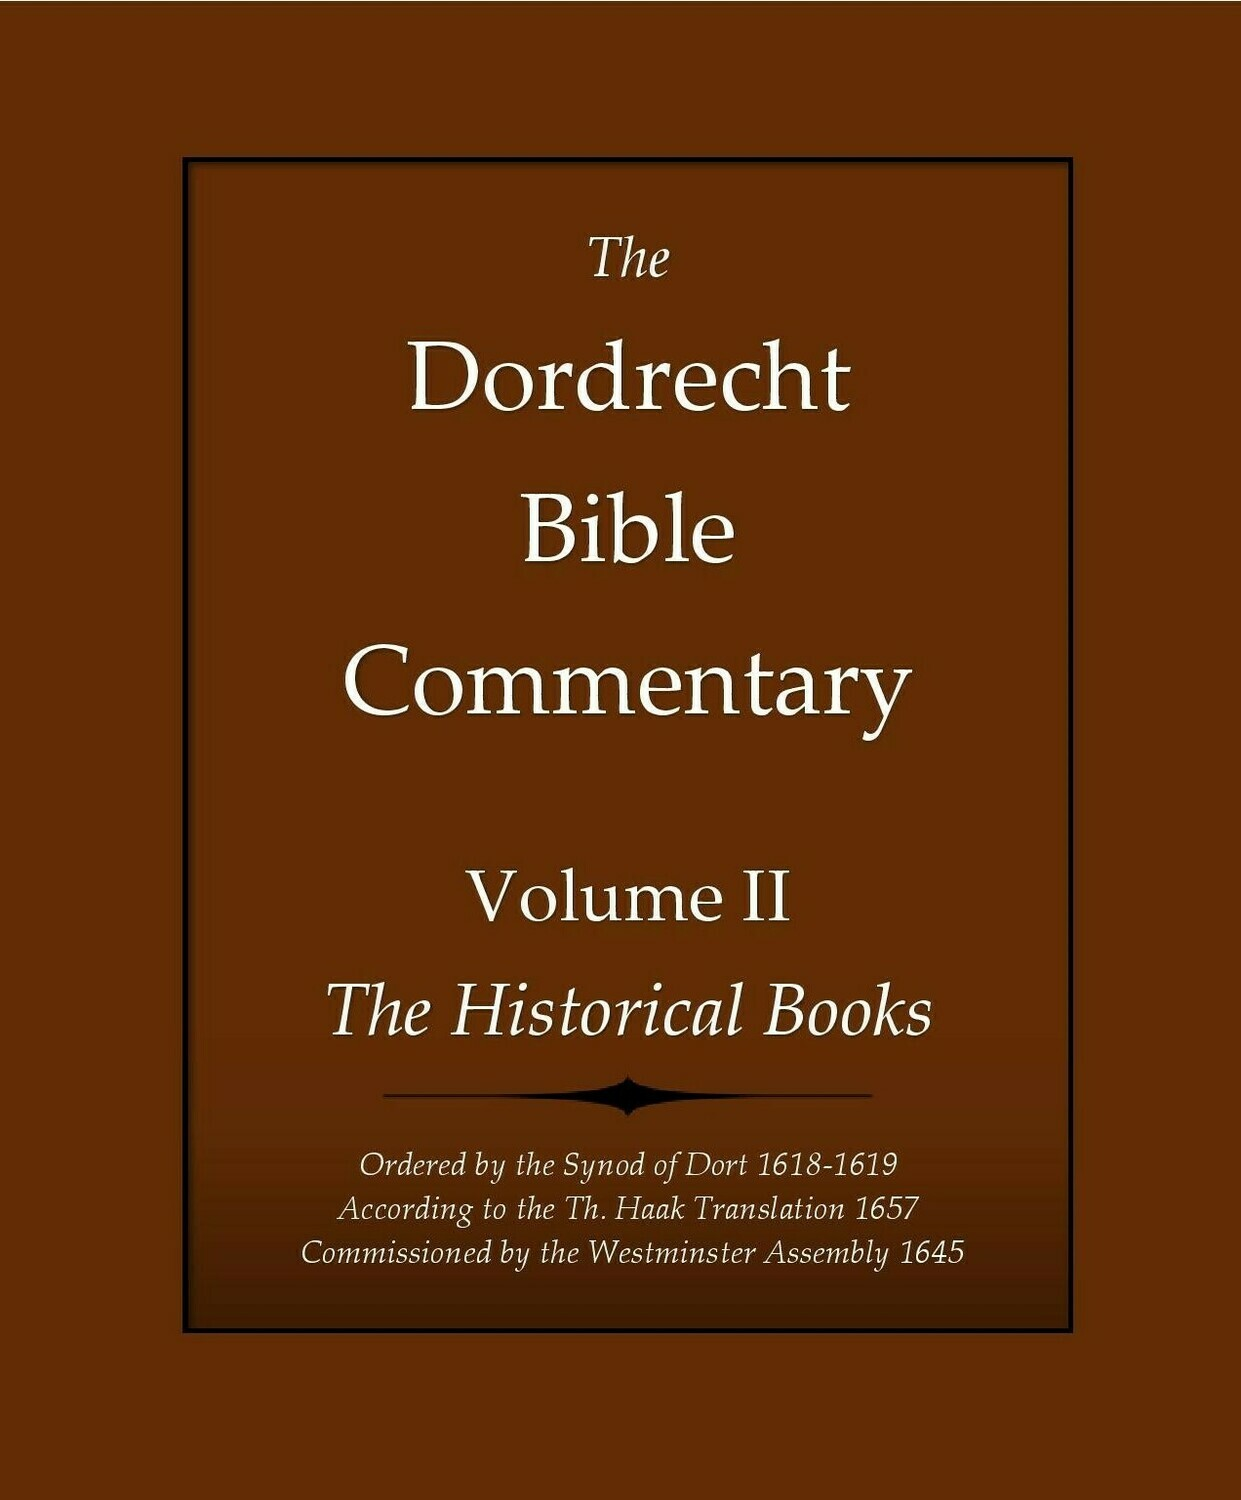 The Dordrecht Bible Commentary: Volume II: The Historical Books (Soft-Cover & E-Book)